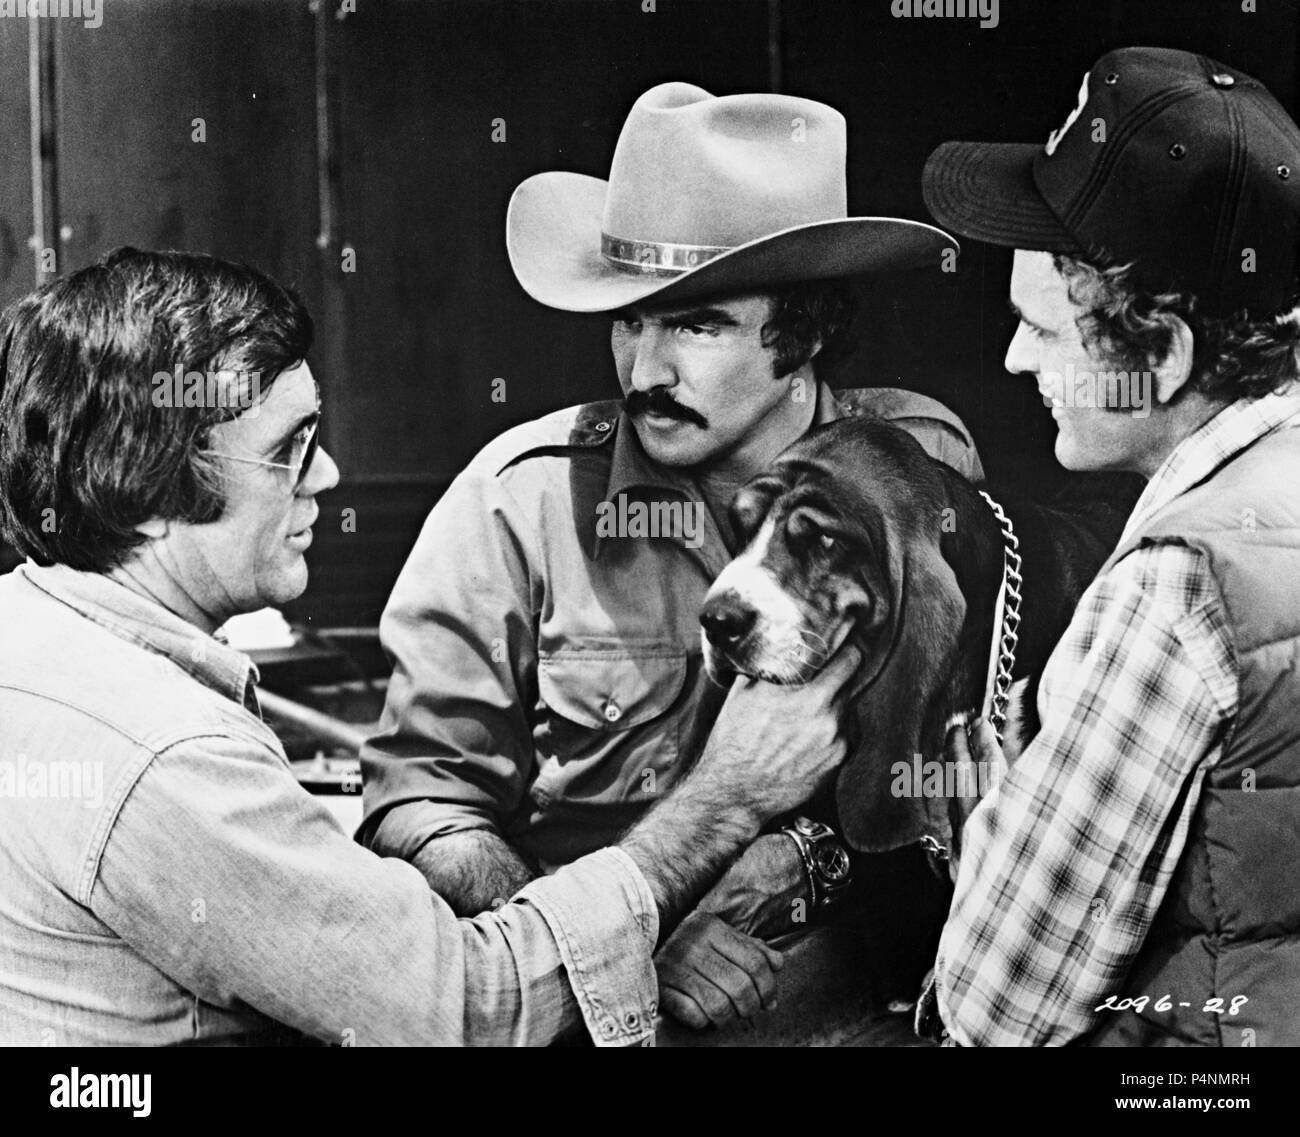 Jerry Reed Stock Photos & Jerry Reed Stock Images - Alamy on